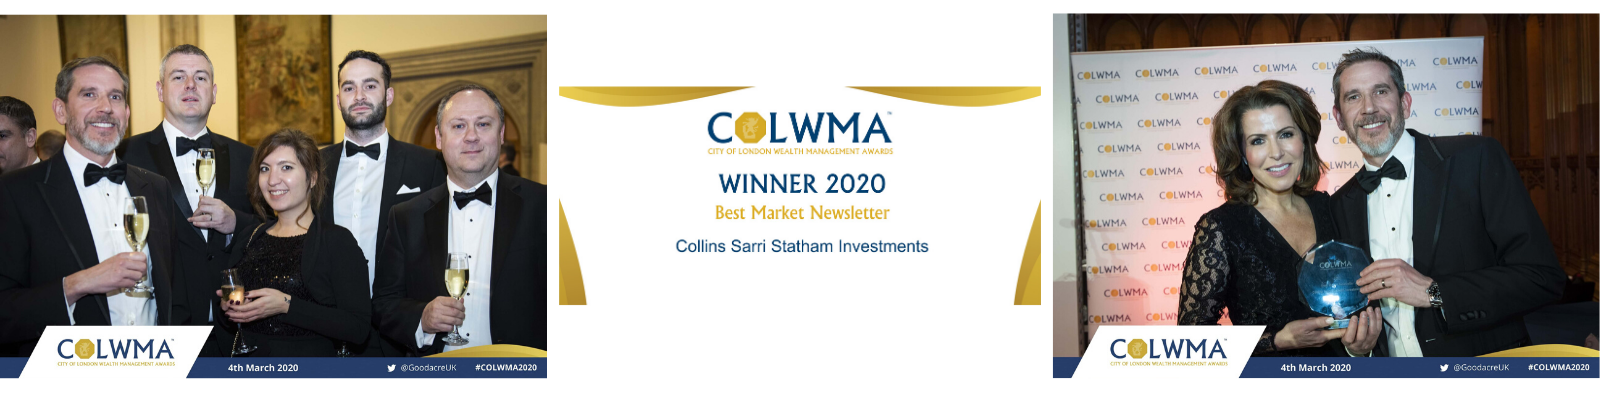 Best Market Newsletter 2020 - COLWMA awards